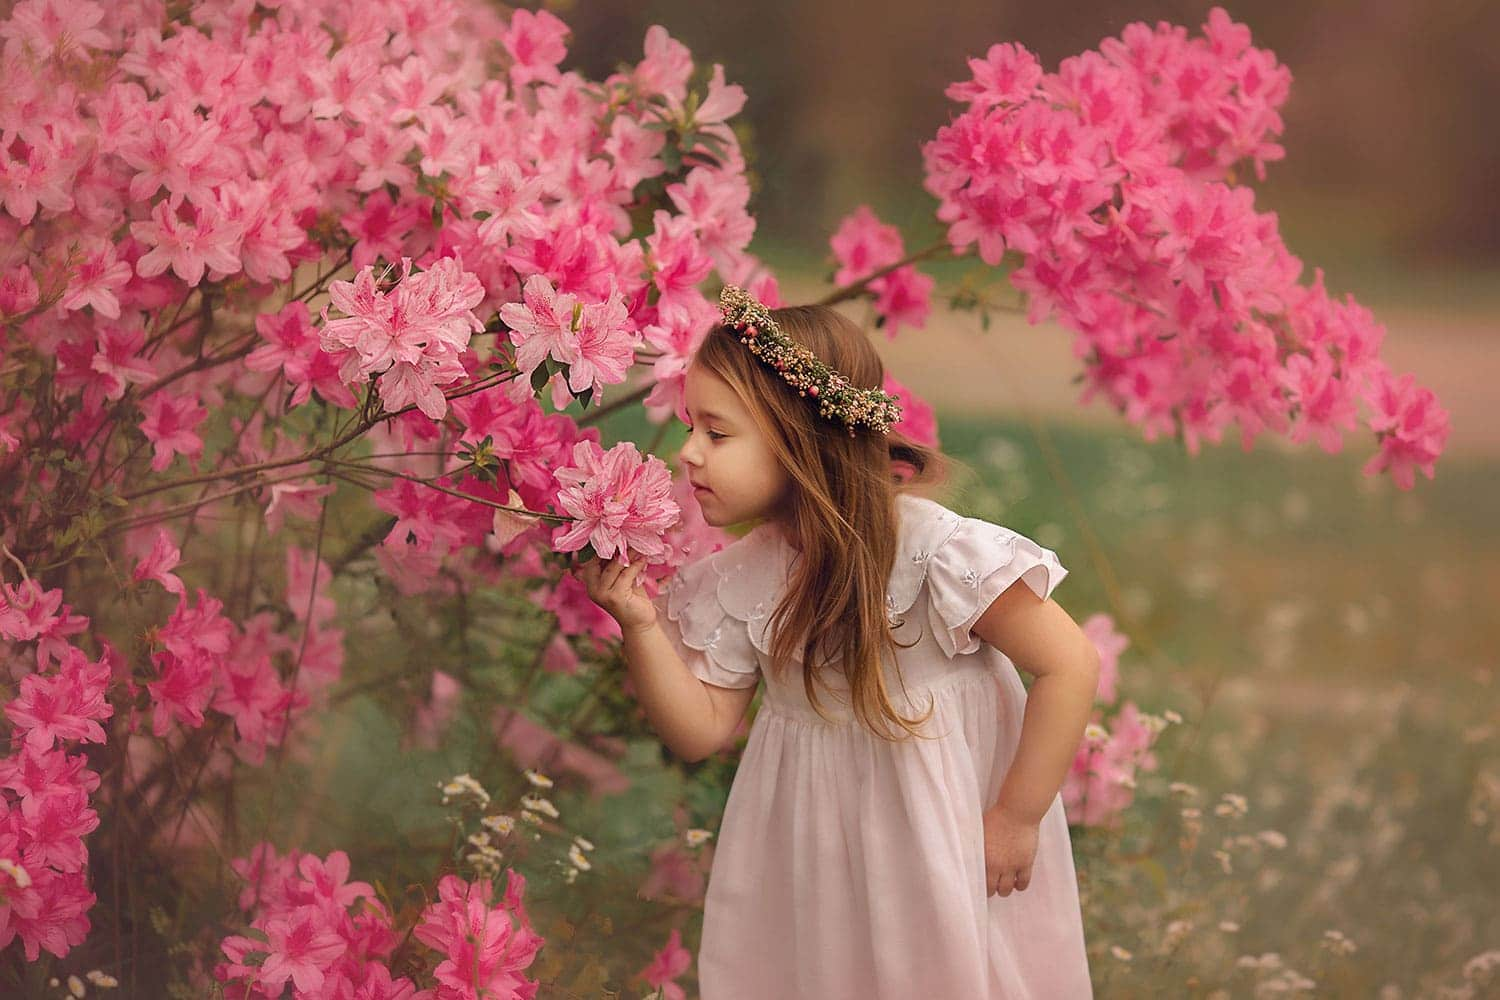 Stunning photo of four year old girl smelling flowers.